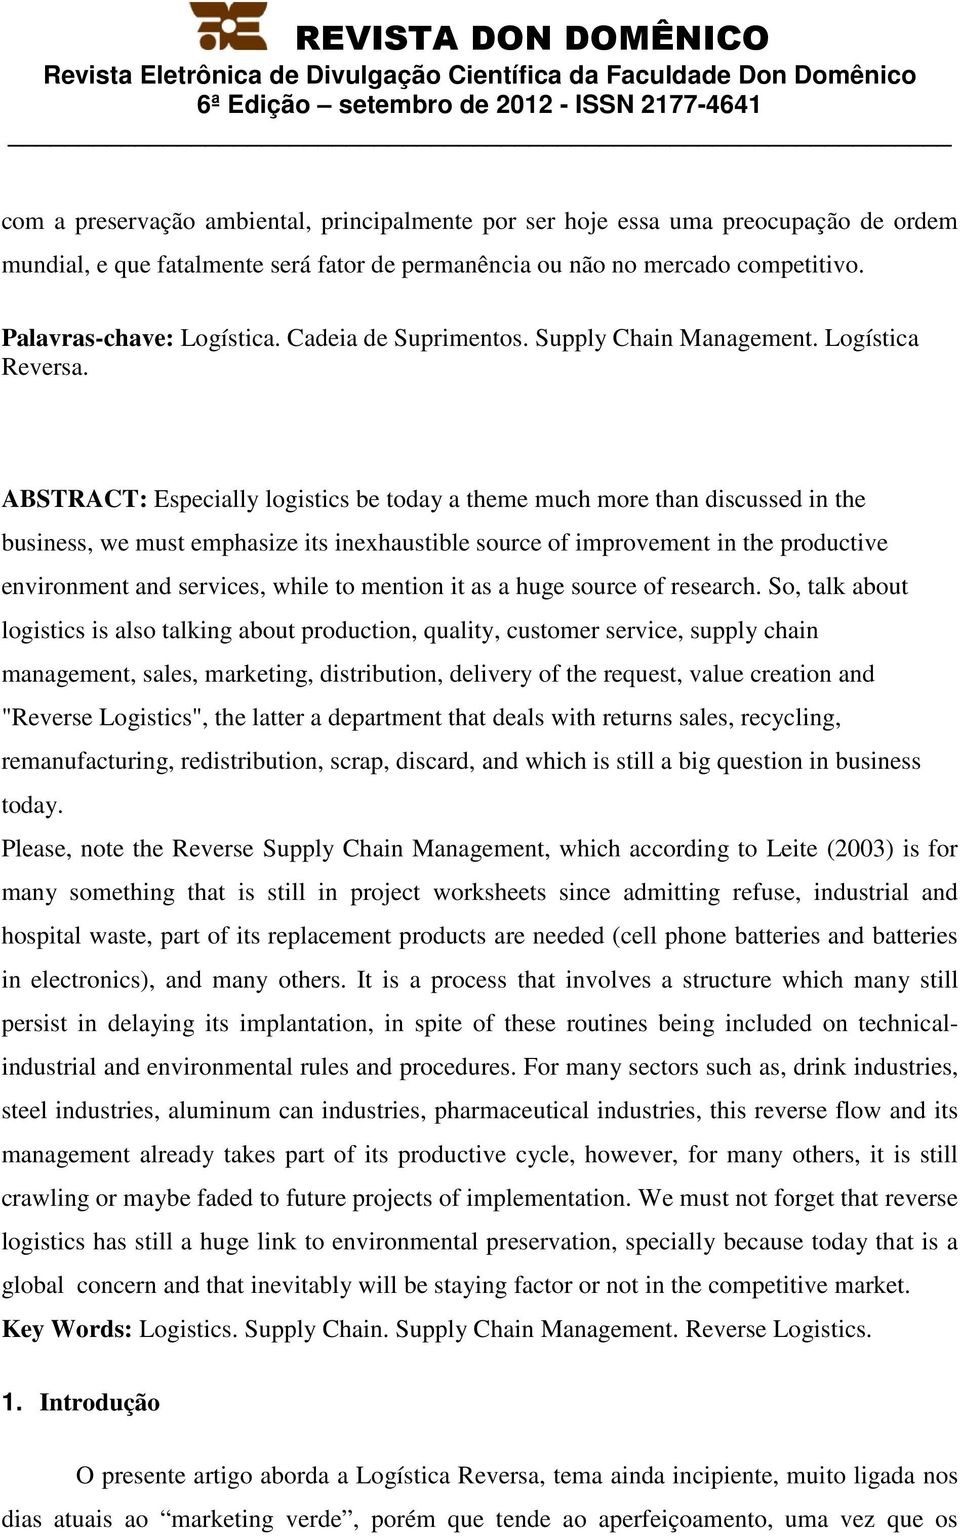 ABSTRACT: Especially logistics be today a theme much more than discussed in the business, we must emphasize its inexhaustible source of improvement in the productive environment and services, while